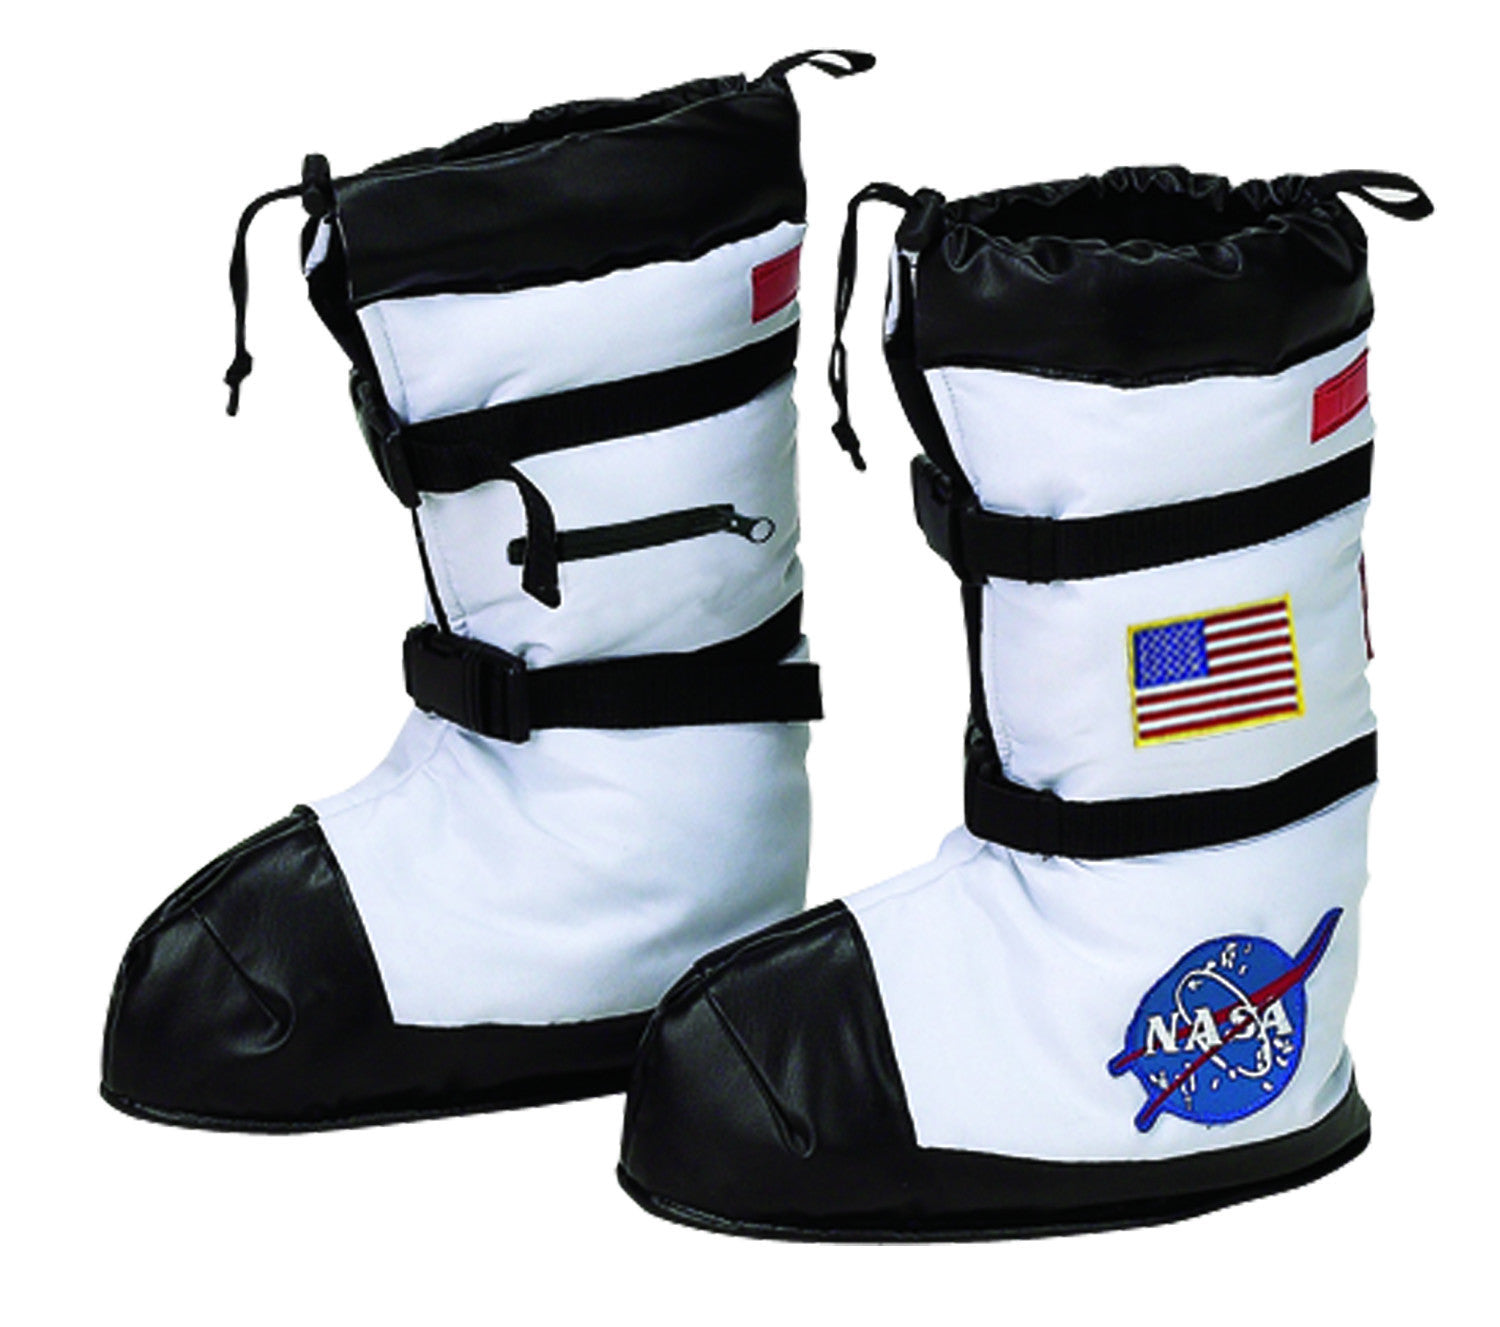 Jr. Astronaut Space Boots - Child Size Small - Off The Wall Toys and Gifts